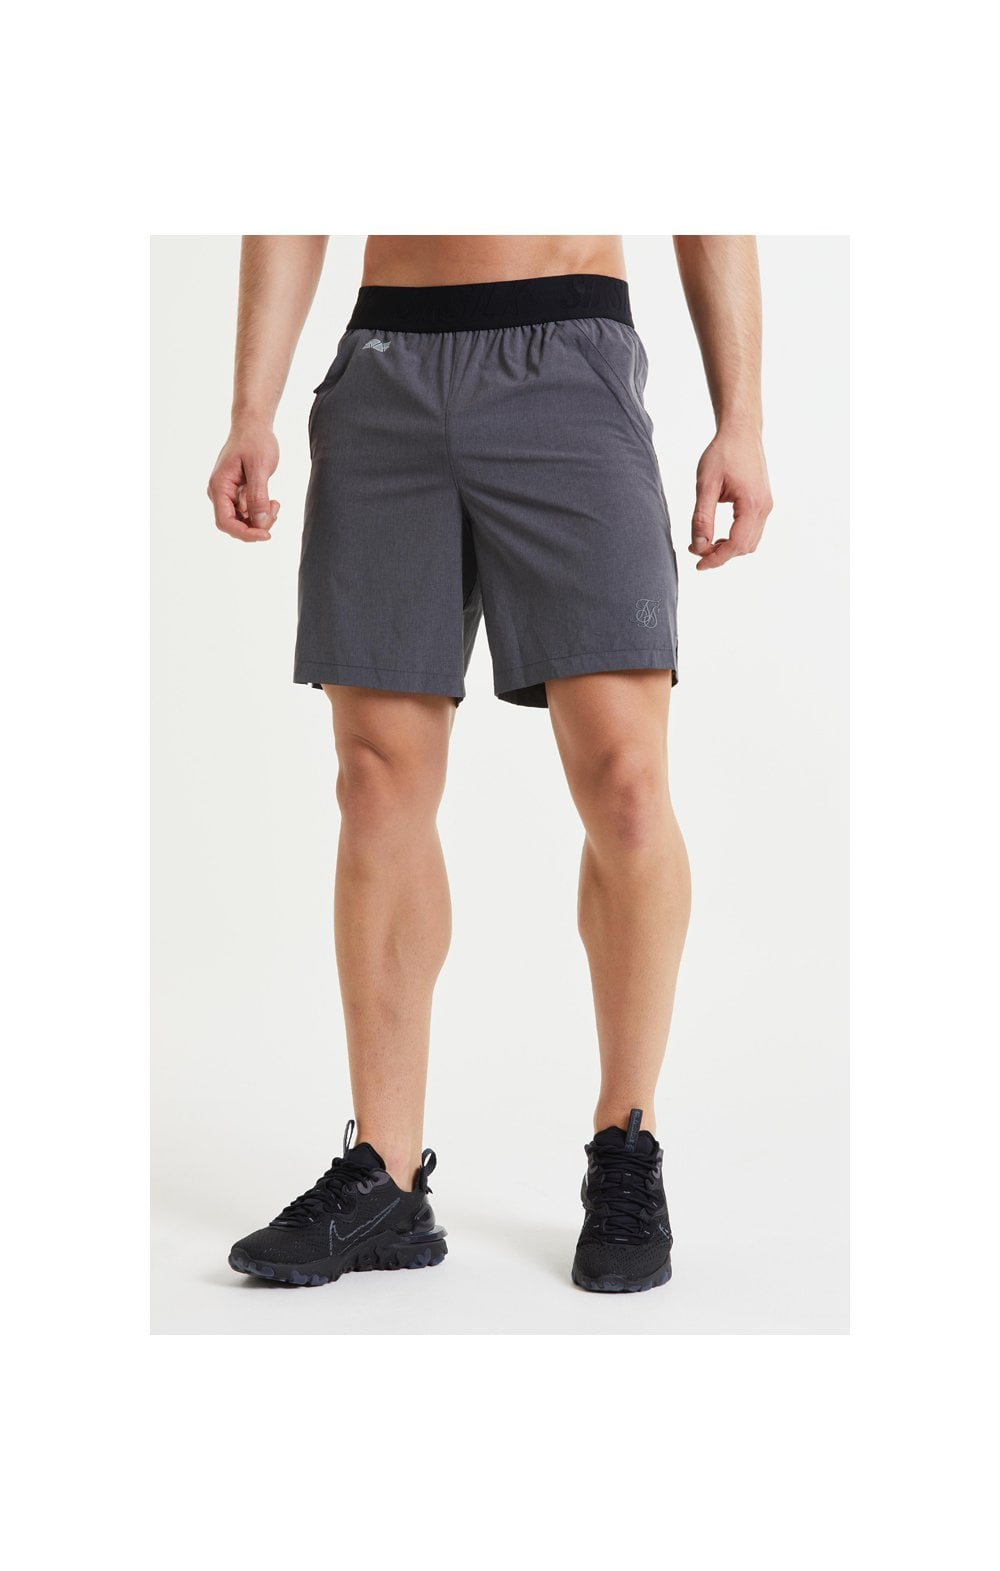 SikSilk Pressure Woven Long Shorts - Charcoal Marl (3)